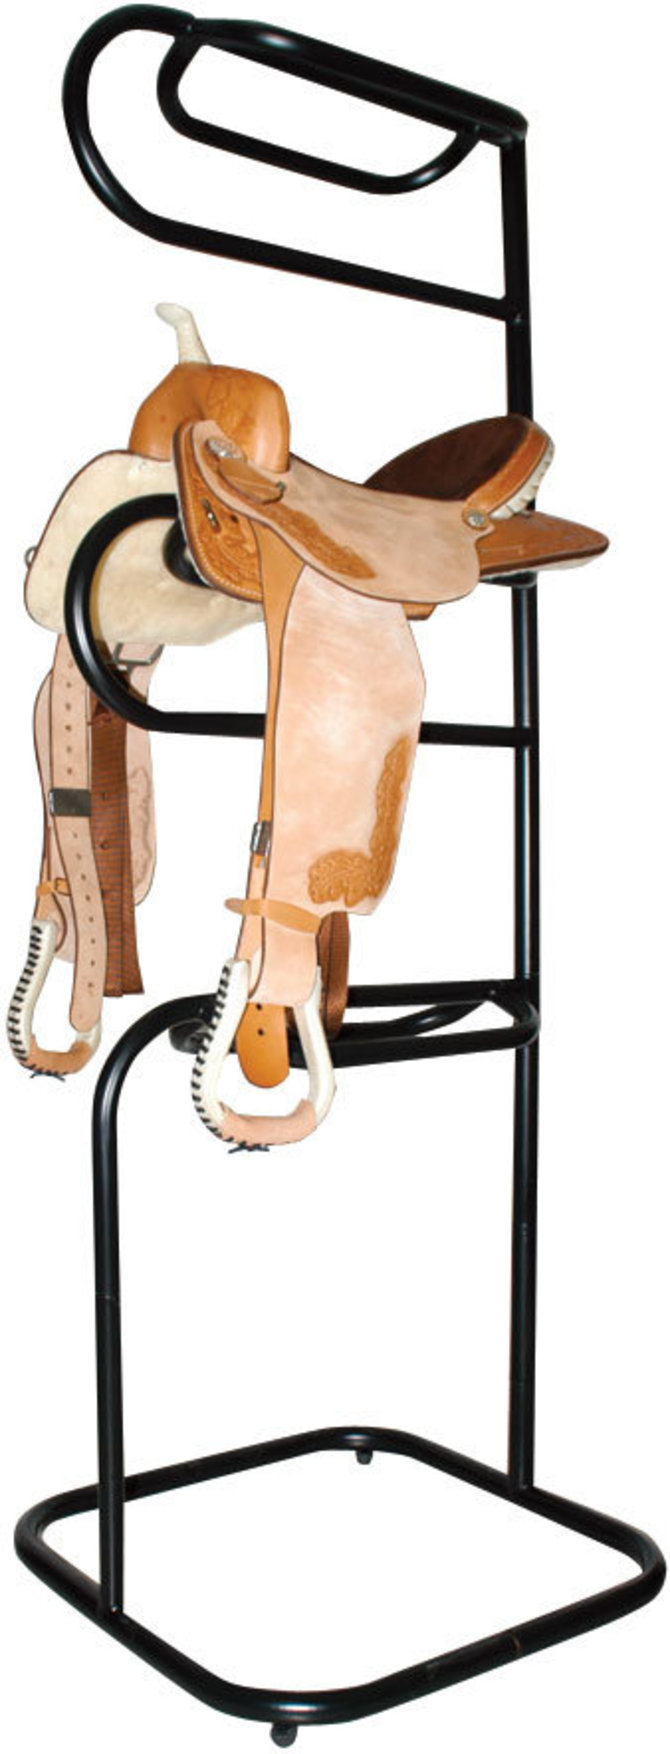 racks t saddle international item breakdown tack a double ct j rack detail